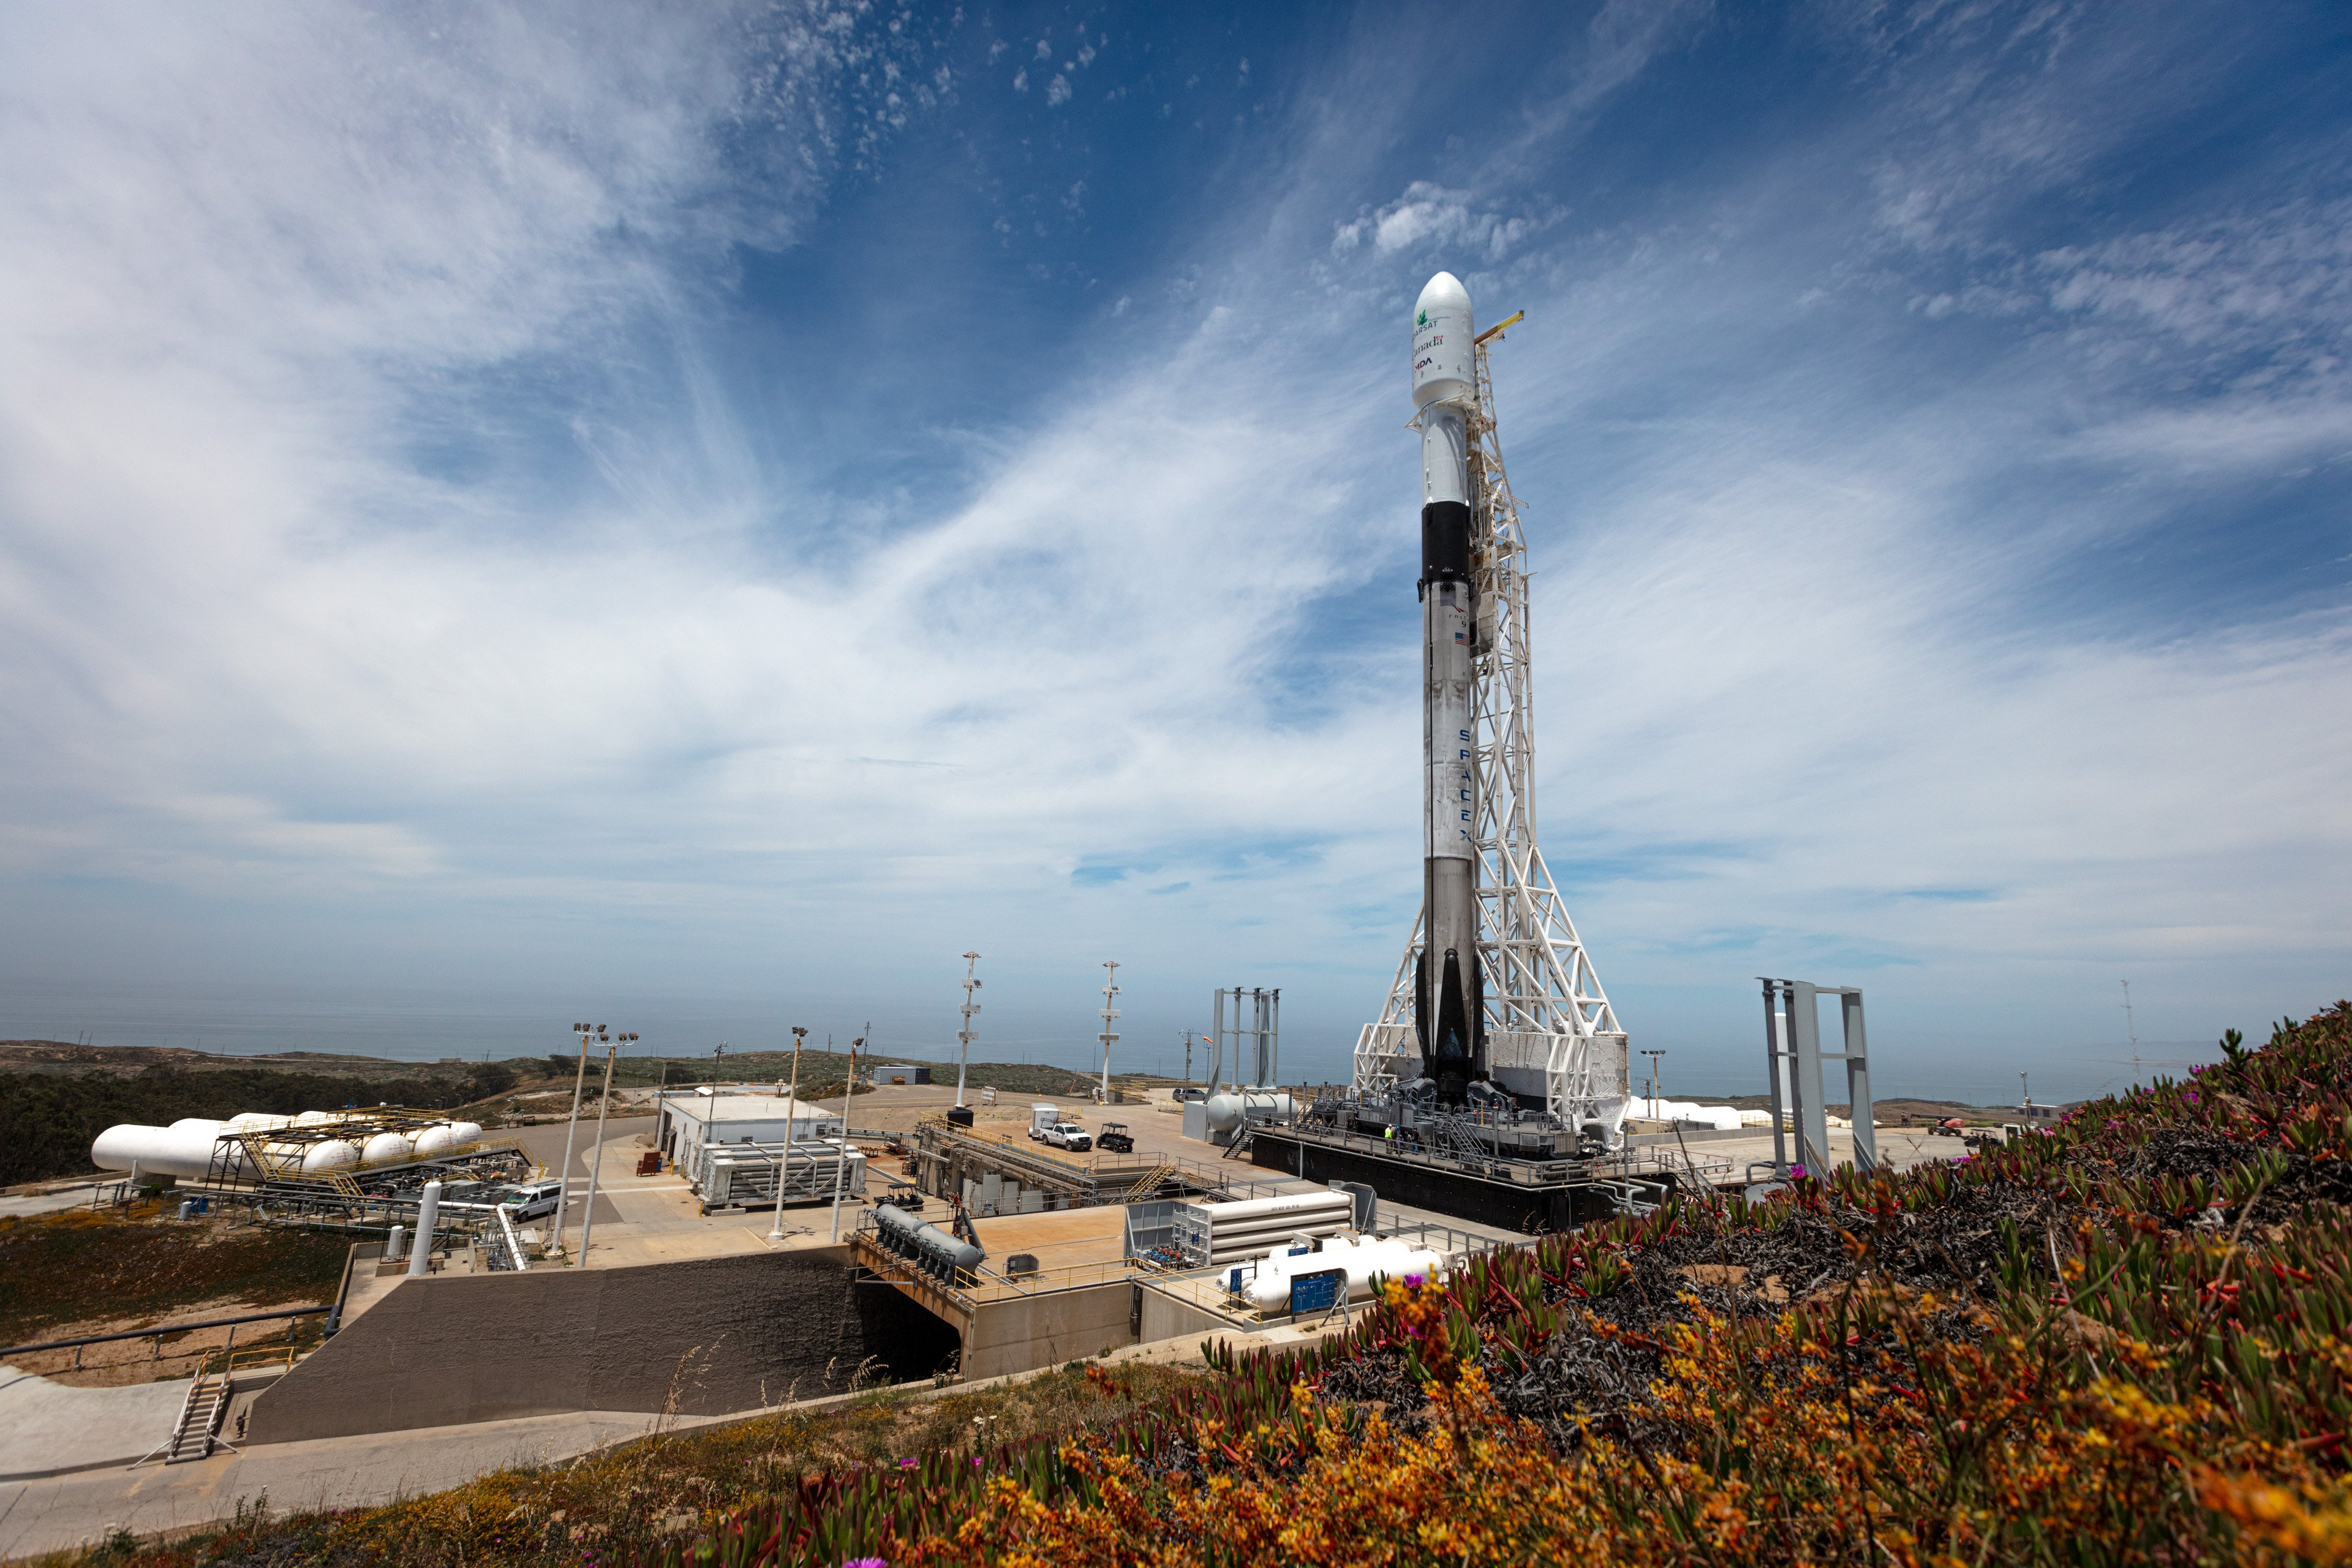 SpaceX's California launch pad at Vandenberg Air Force Base